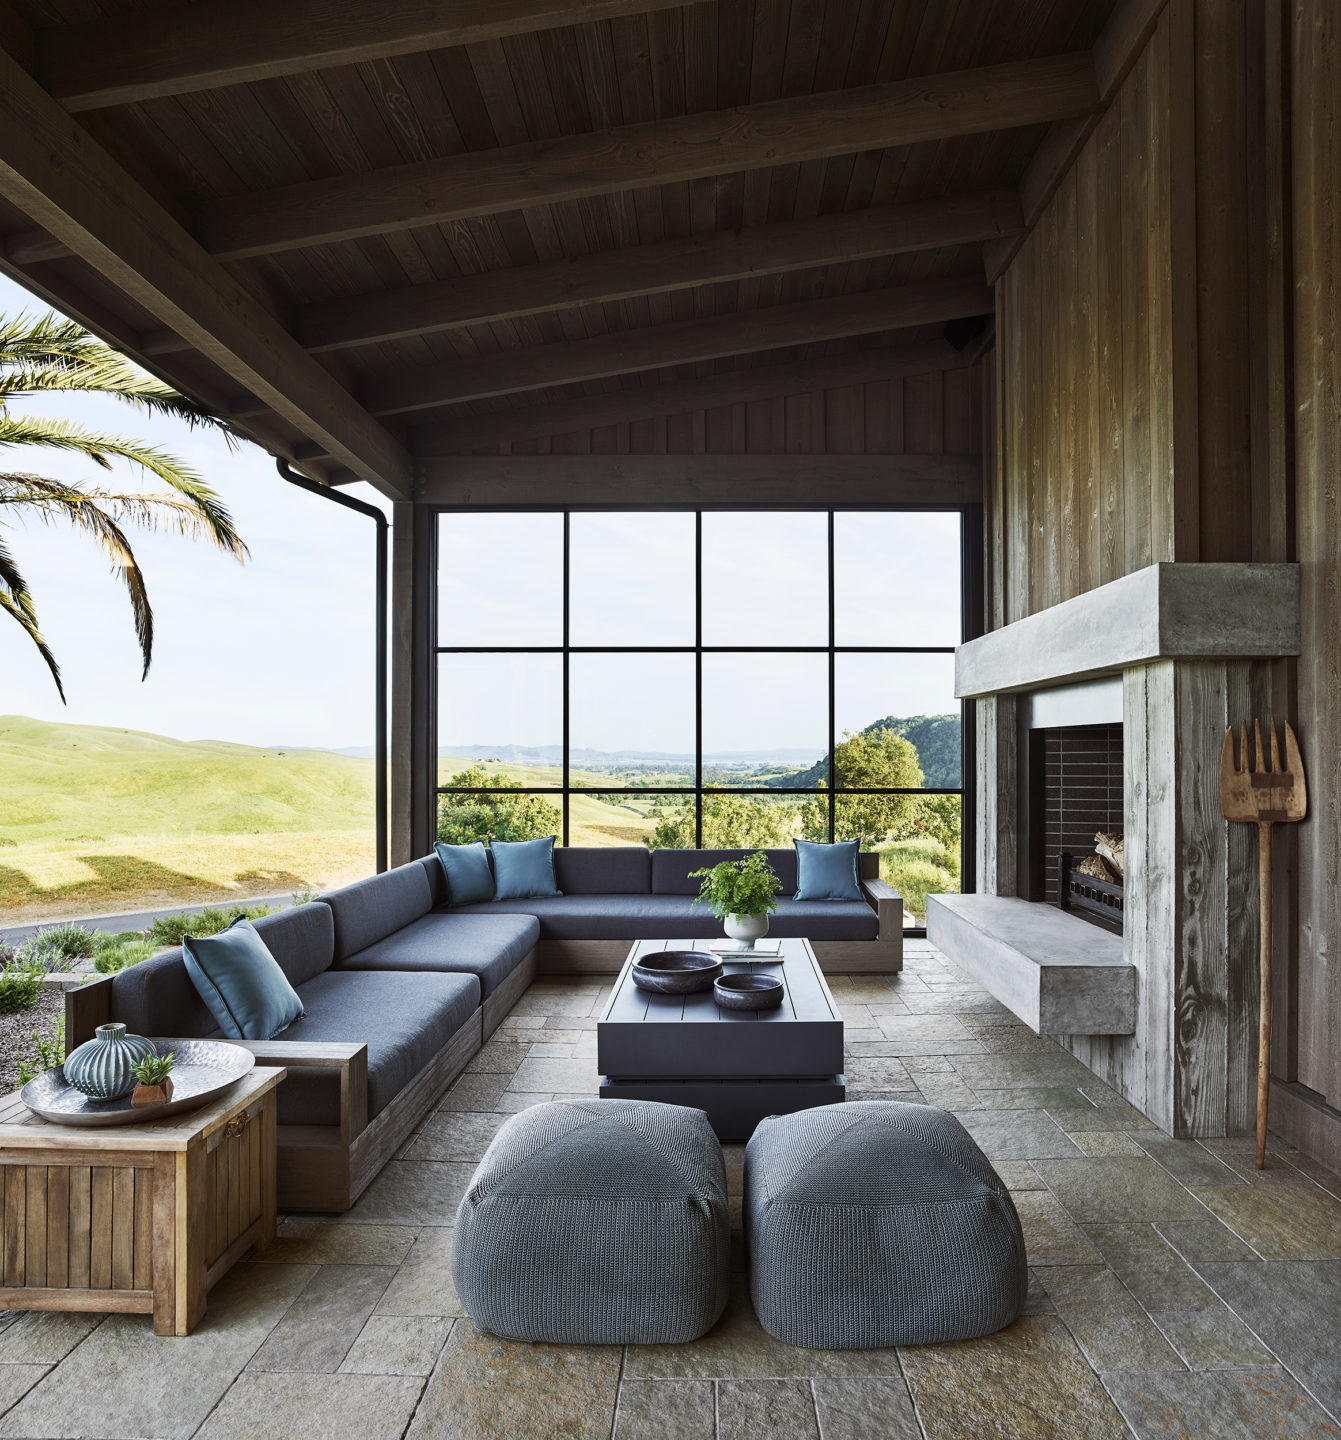 Jennifer_robins_interiors_projects_napa_valley_7_exterior_outdoor_ext_fireplace_seating